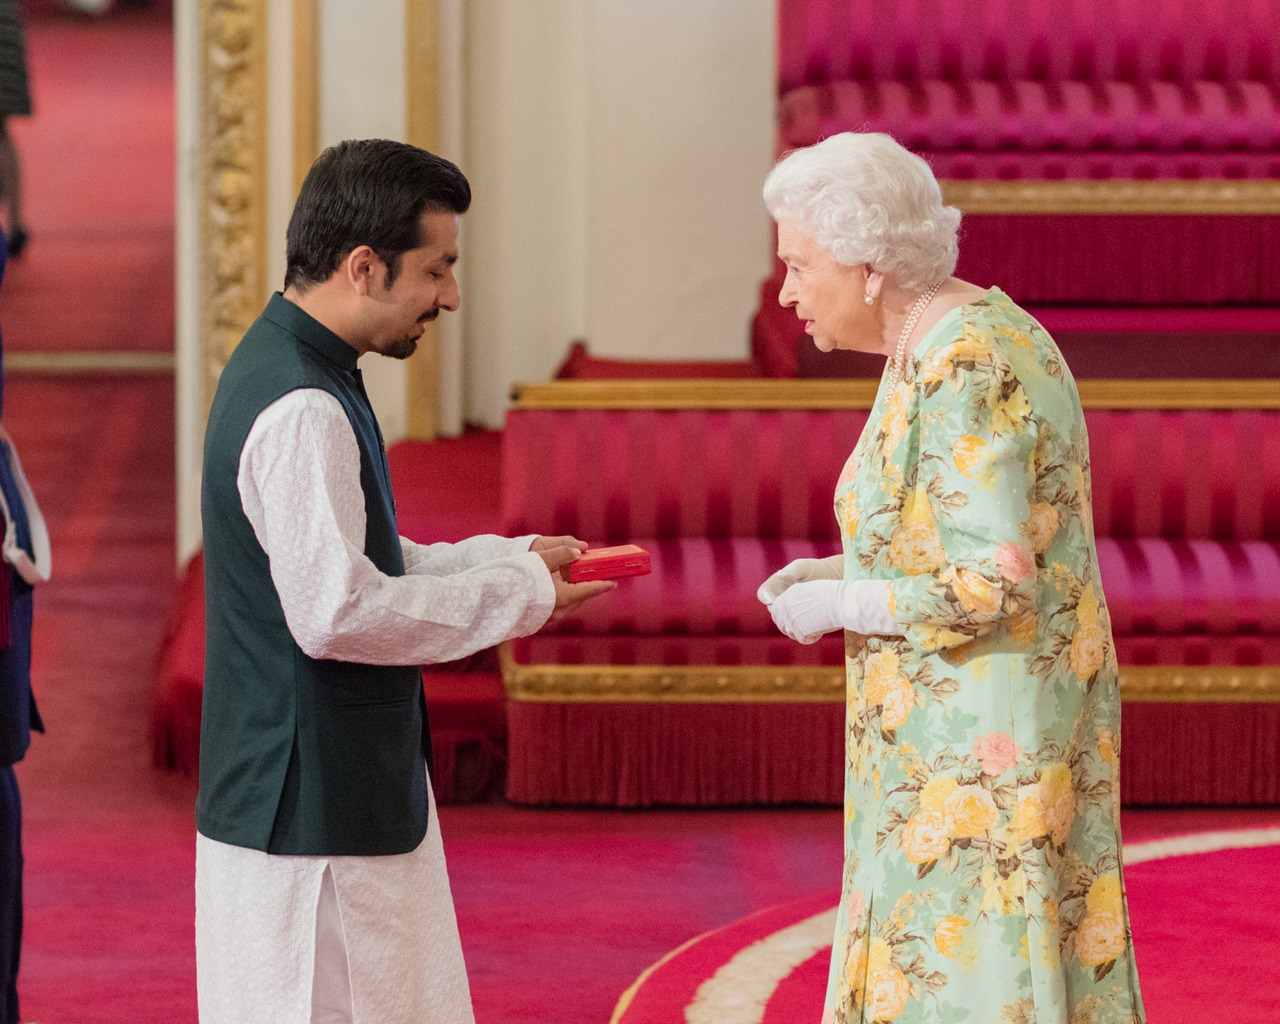 Mujtaba receiving the Queen's Young Leader's Award from Queen Elizabeth II